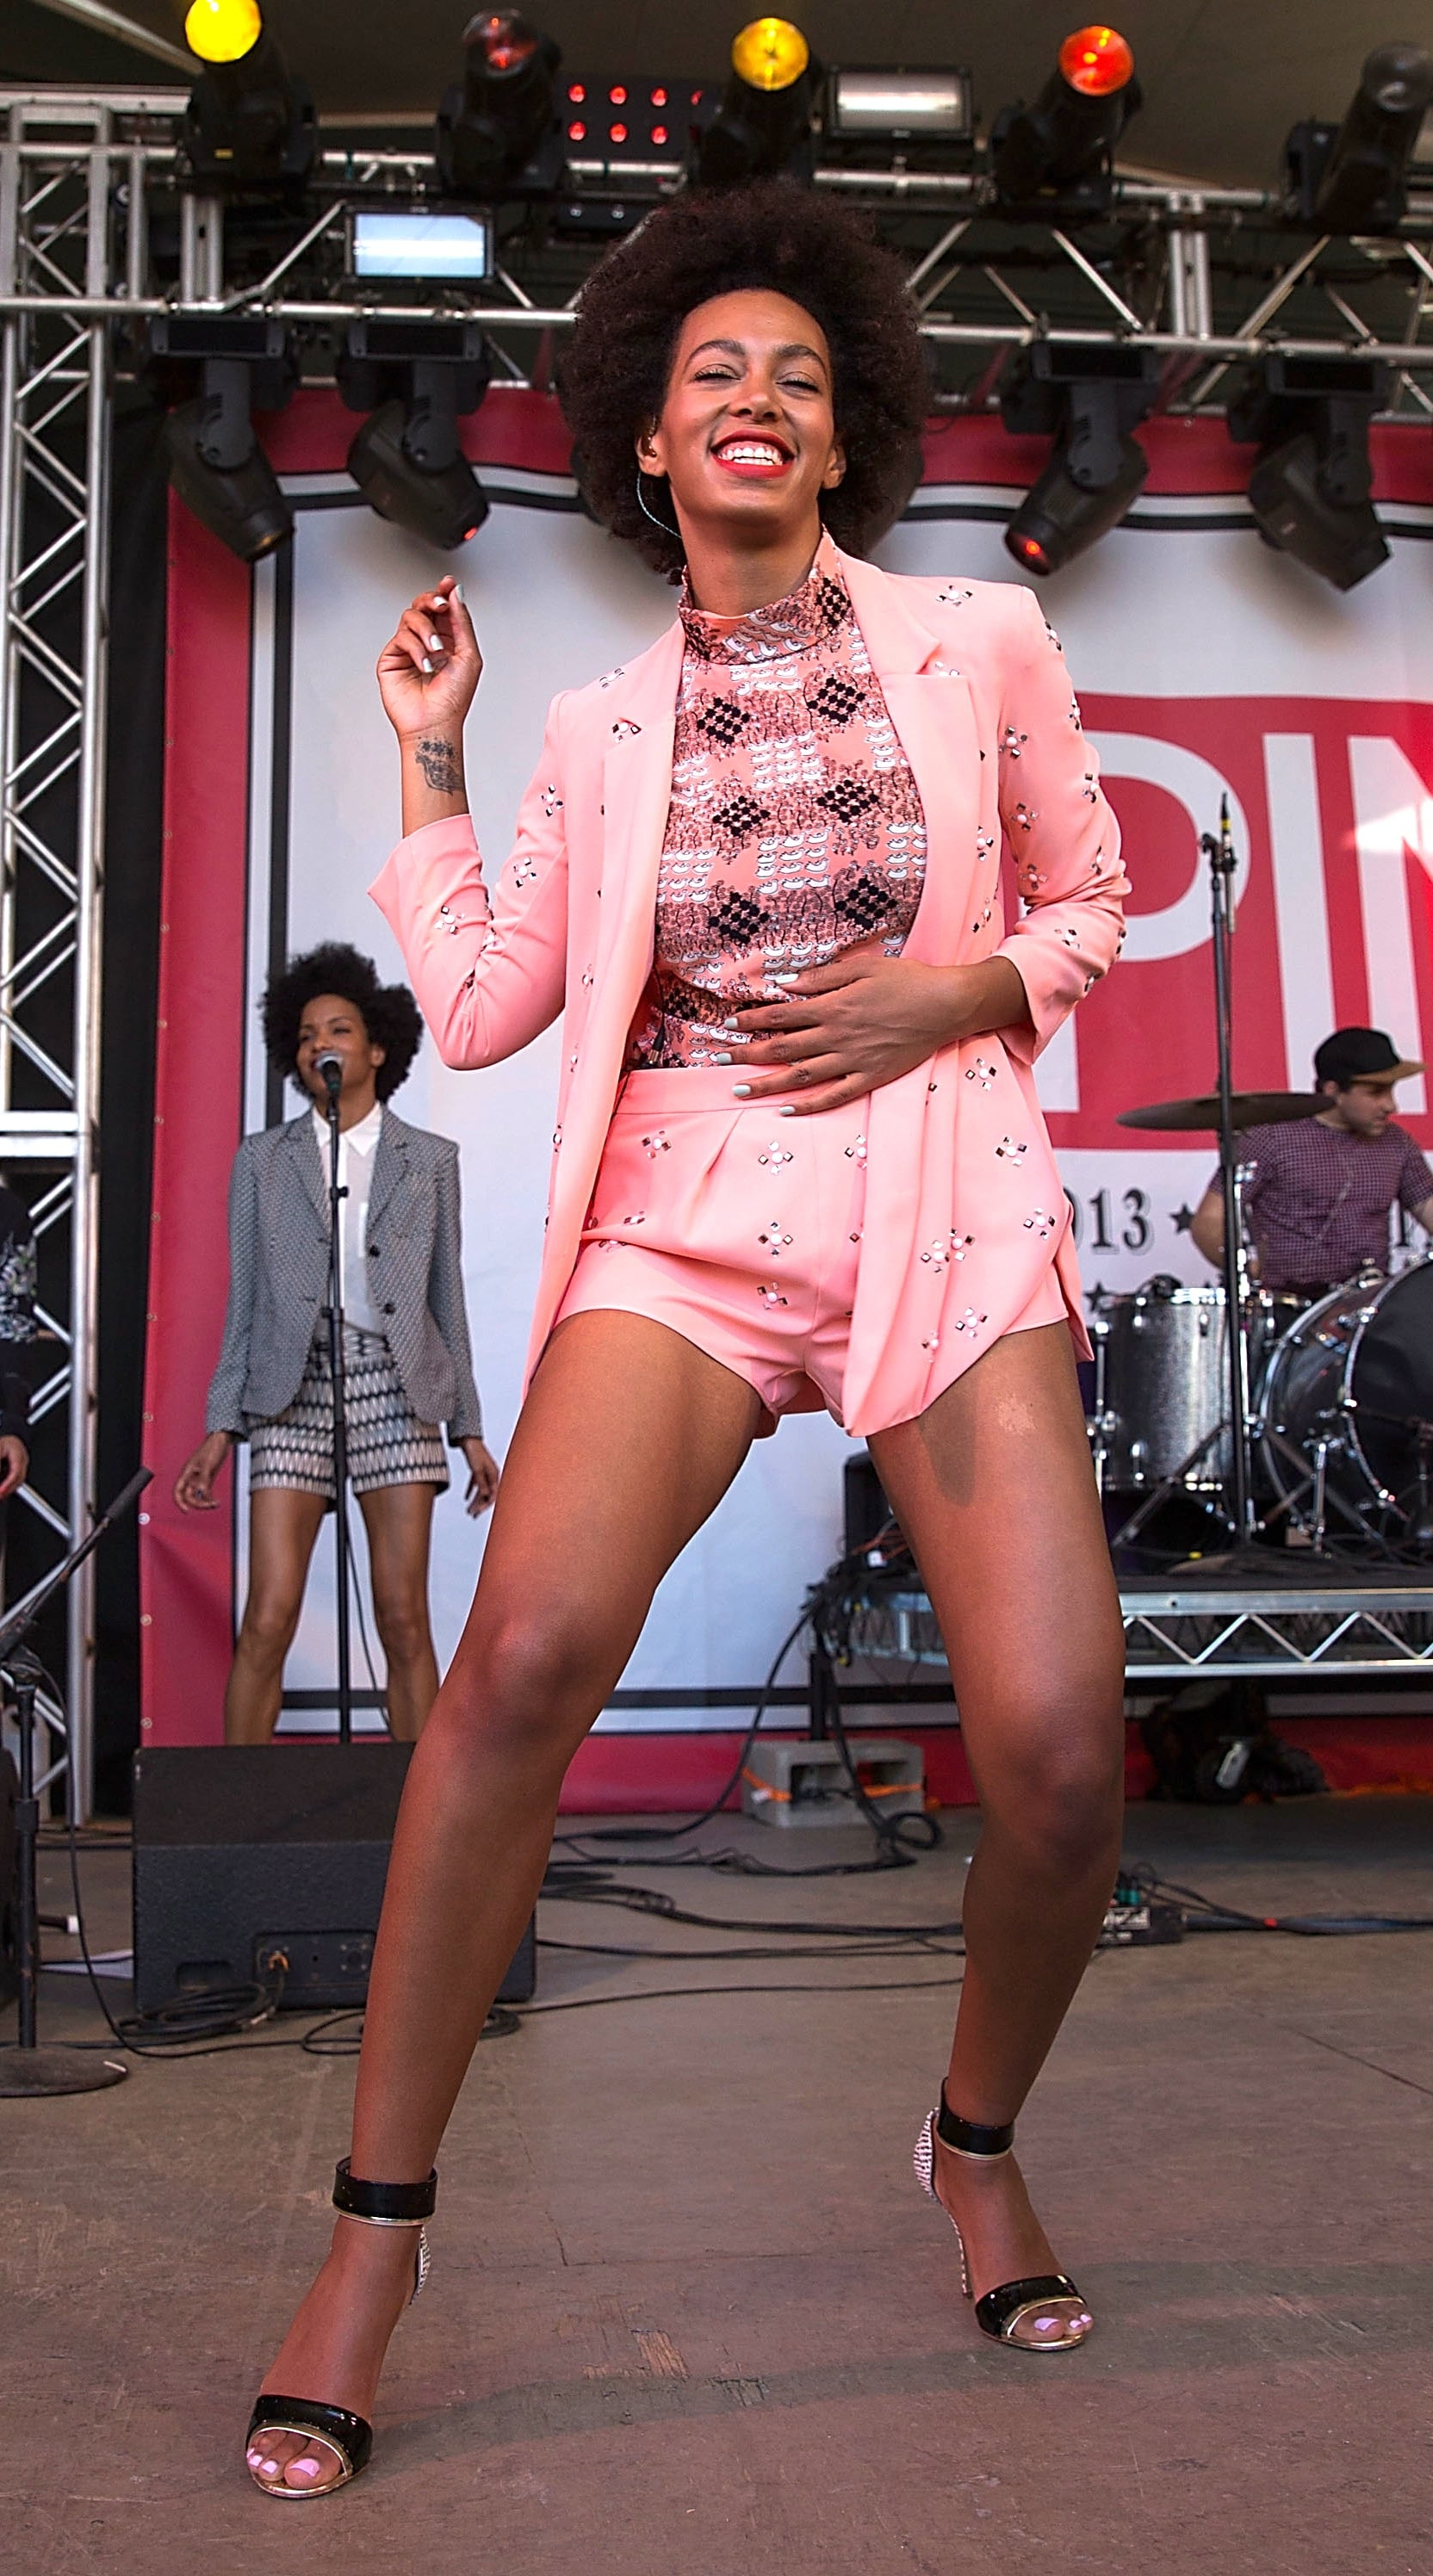 Solange Knowles suited up in a pastel-pink Clover Canyon duo, printed Marni top, and minimalistic Nicholas Kirkwood sandals while on stage in Austin.